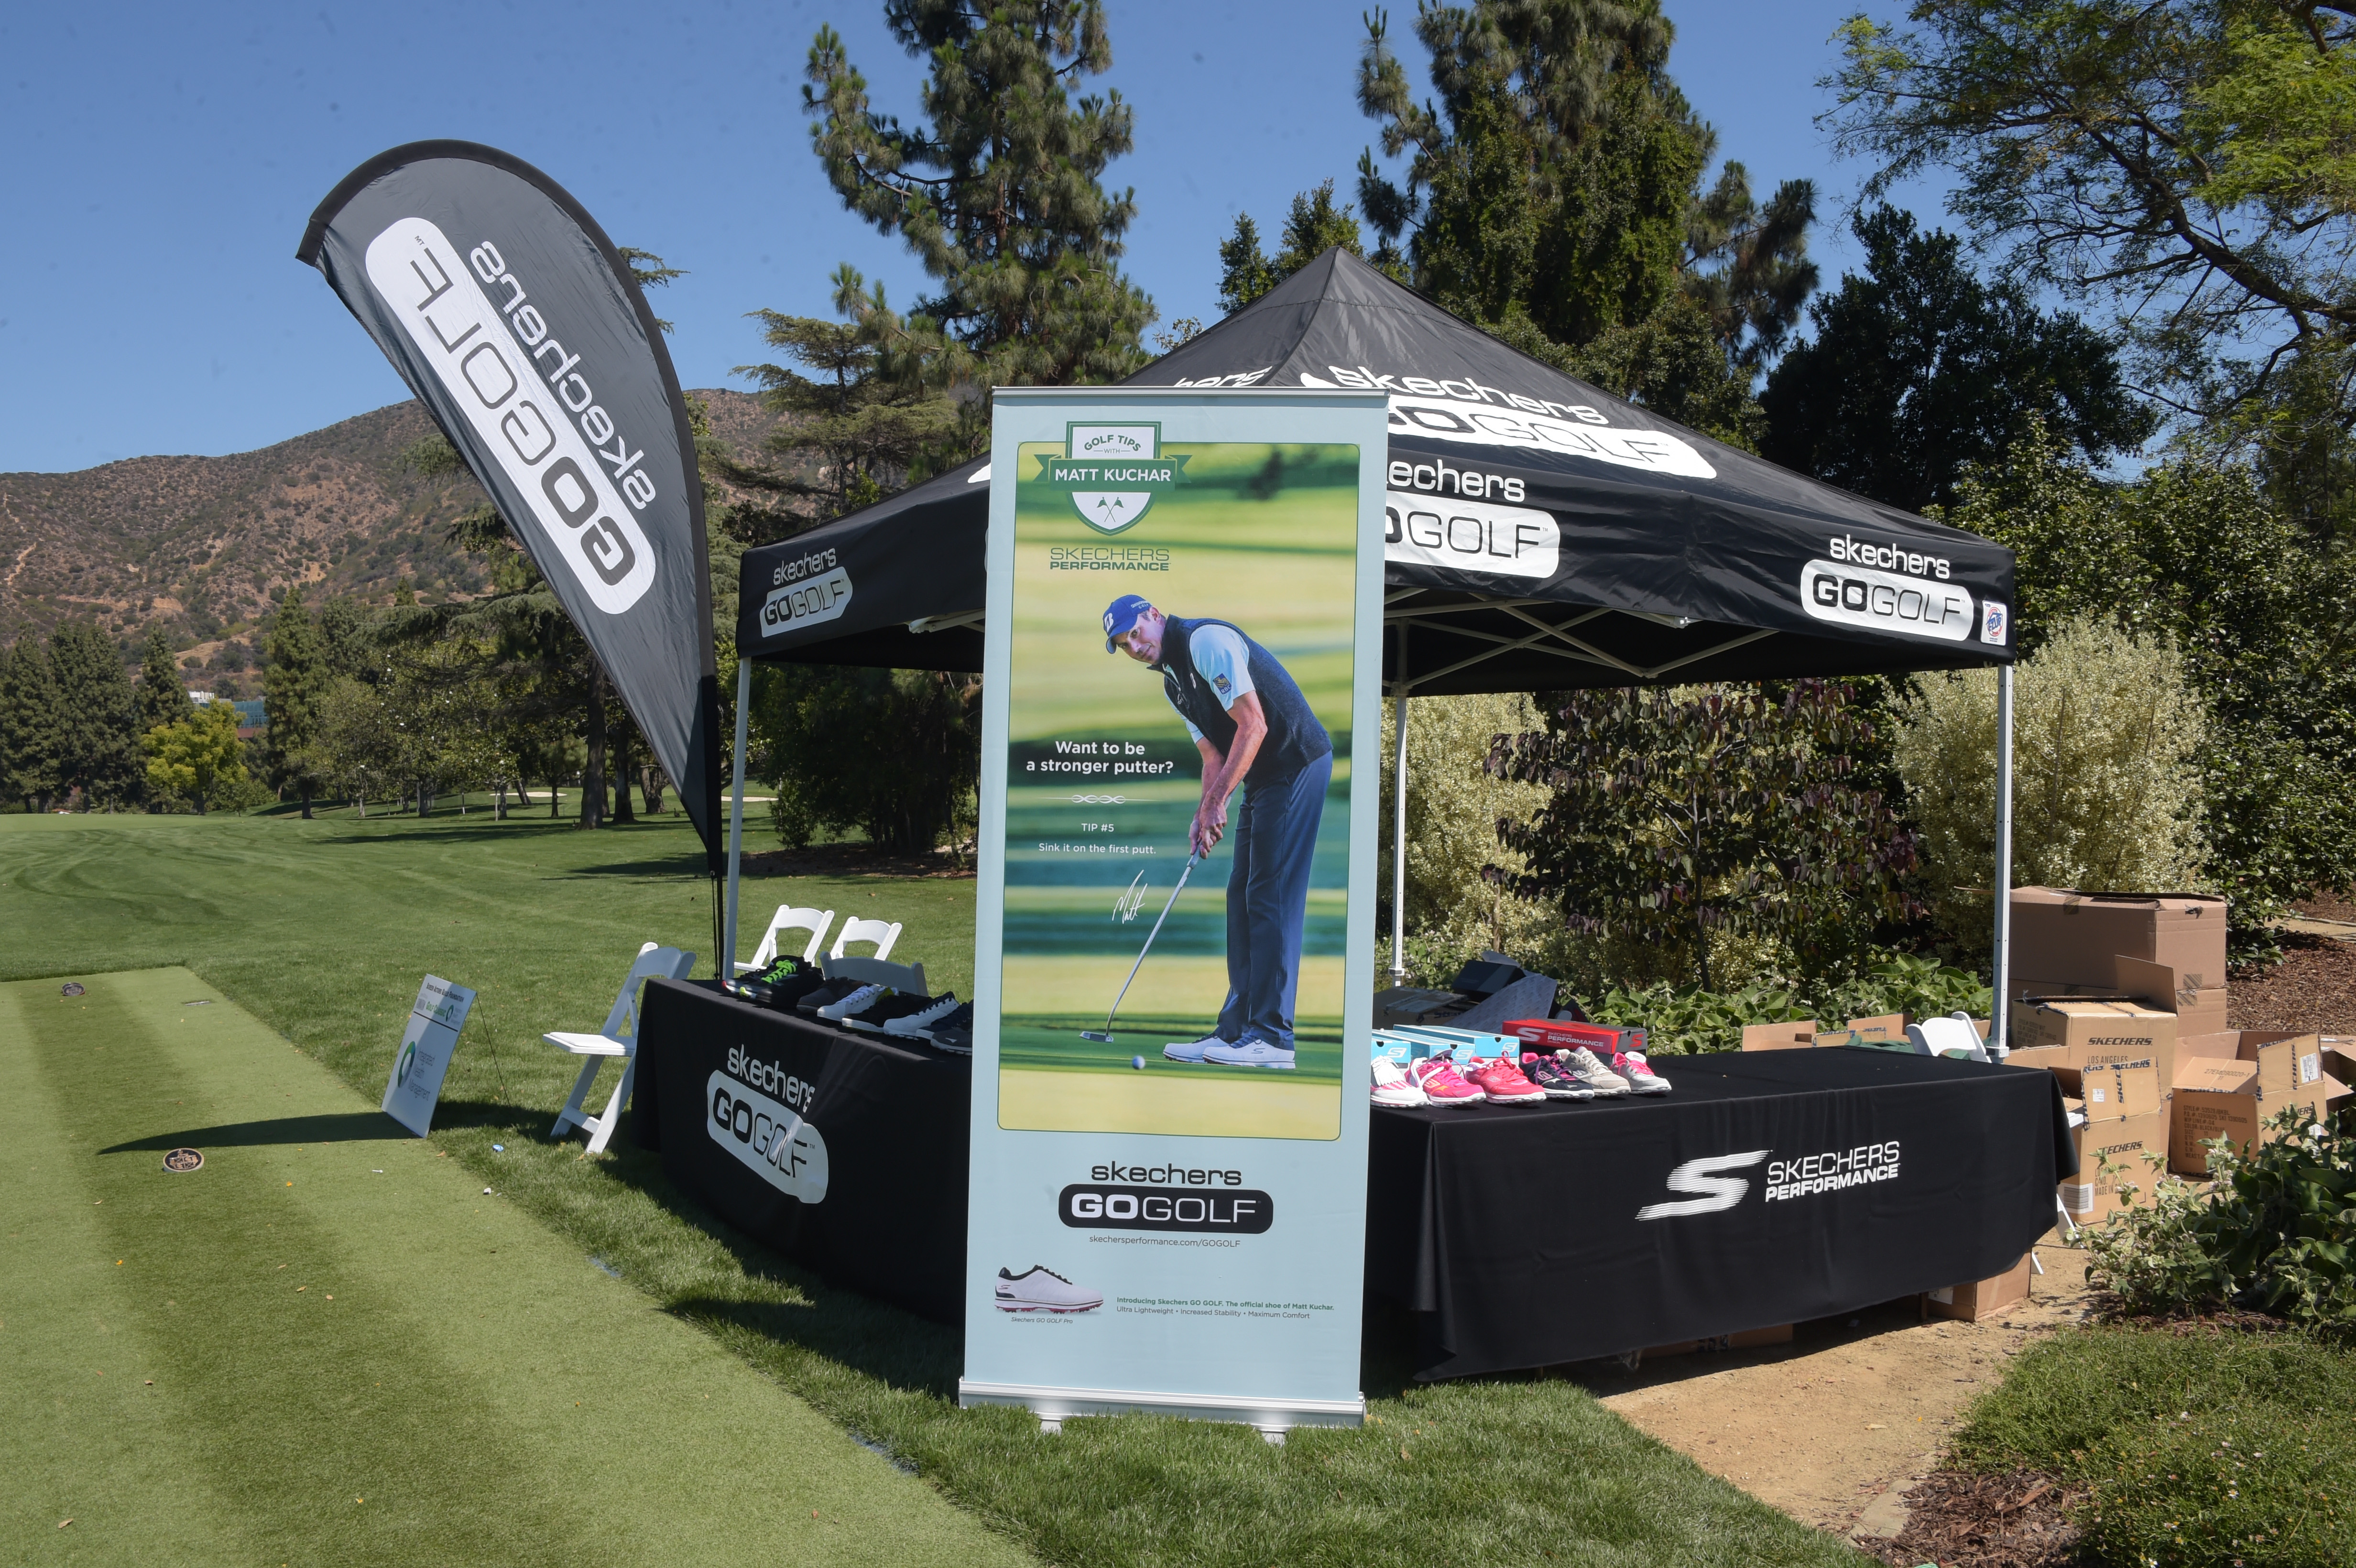 Sketchers Go Golf sponsors The Screen Actors Guild Foundation's 6th Annual Los Angeles Golf Classic on June 8, 2015 in Burbank, California. (Photo by Jason Kempin/Getty Images for The Screen Actors Guild Foundation)